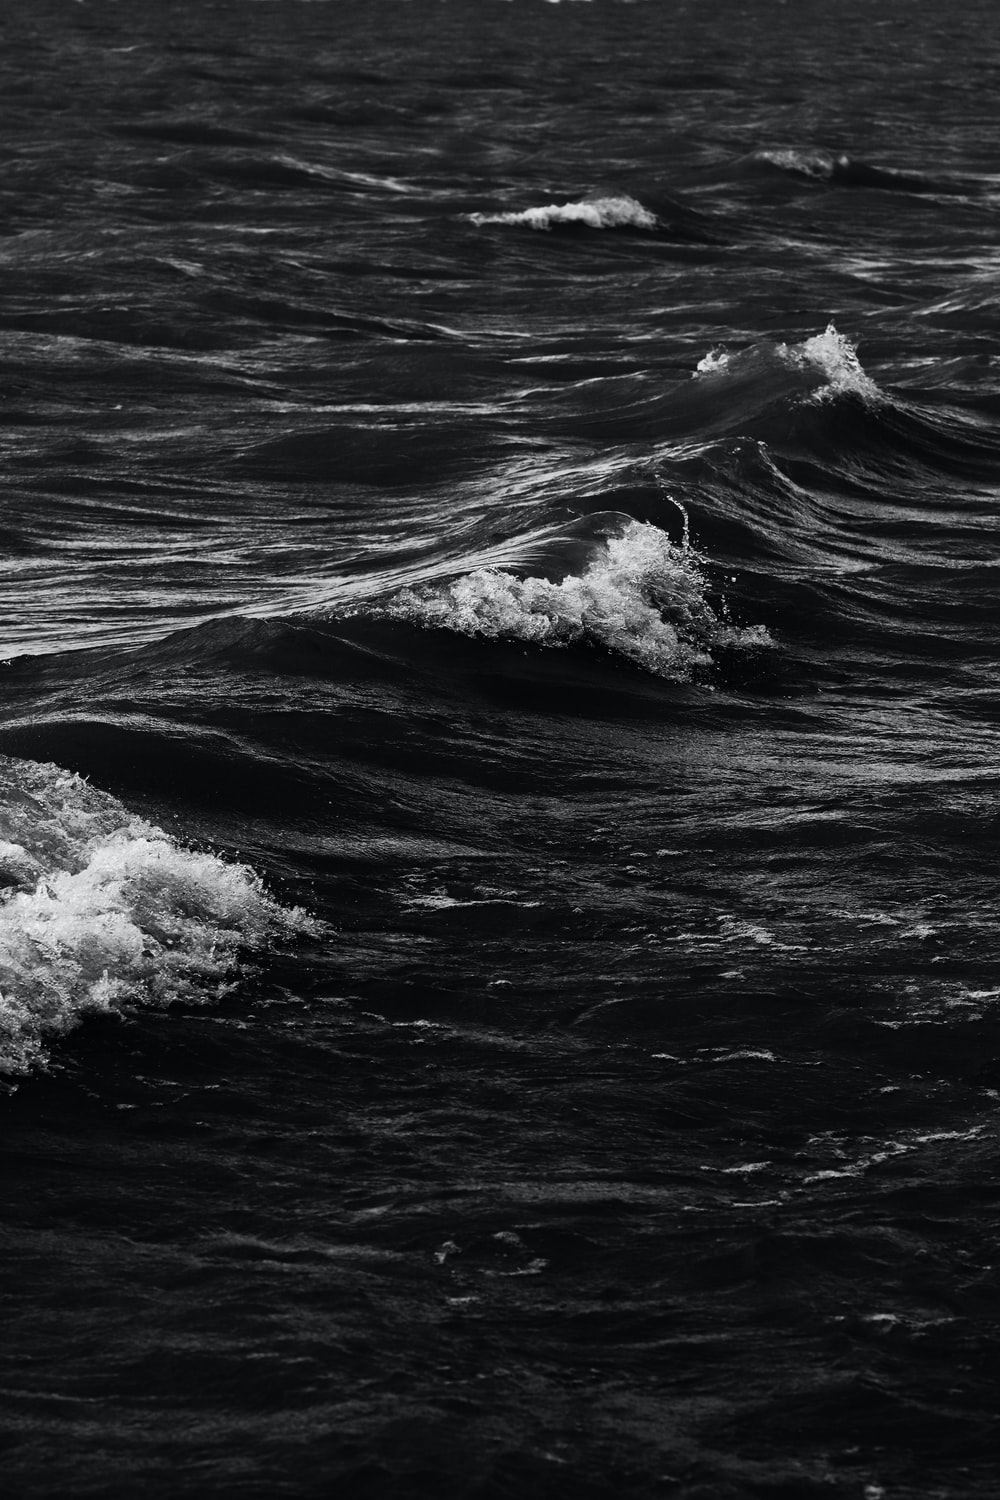 ocean waves during day time